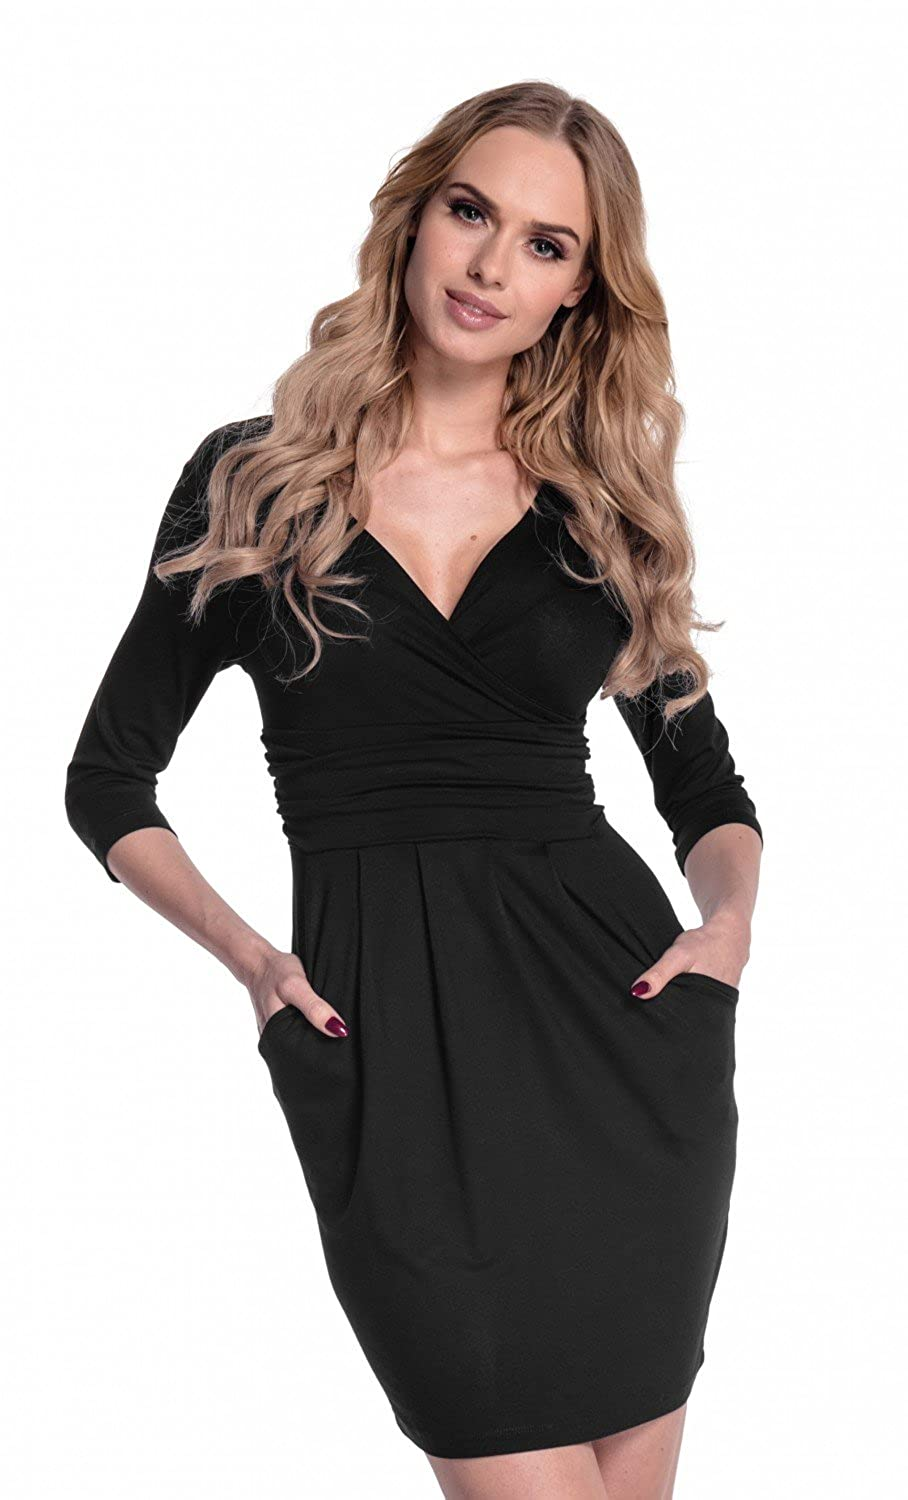 Jersey Tulip Dress with pockets and empire waist - true to size and great  fit for every body shape. Excellent stretch fabric allows comfortable fit ccd524d2c98f